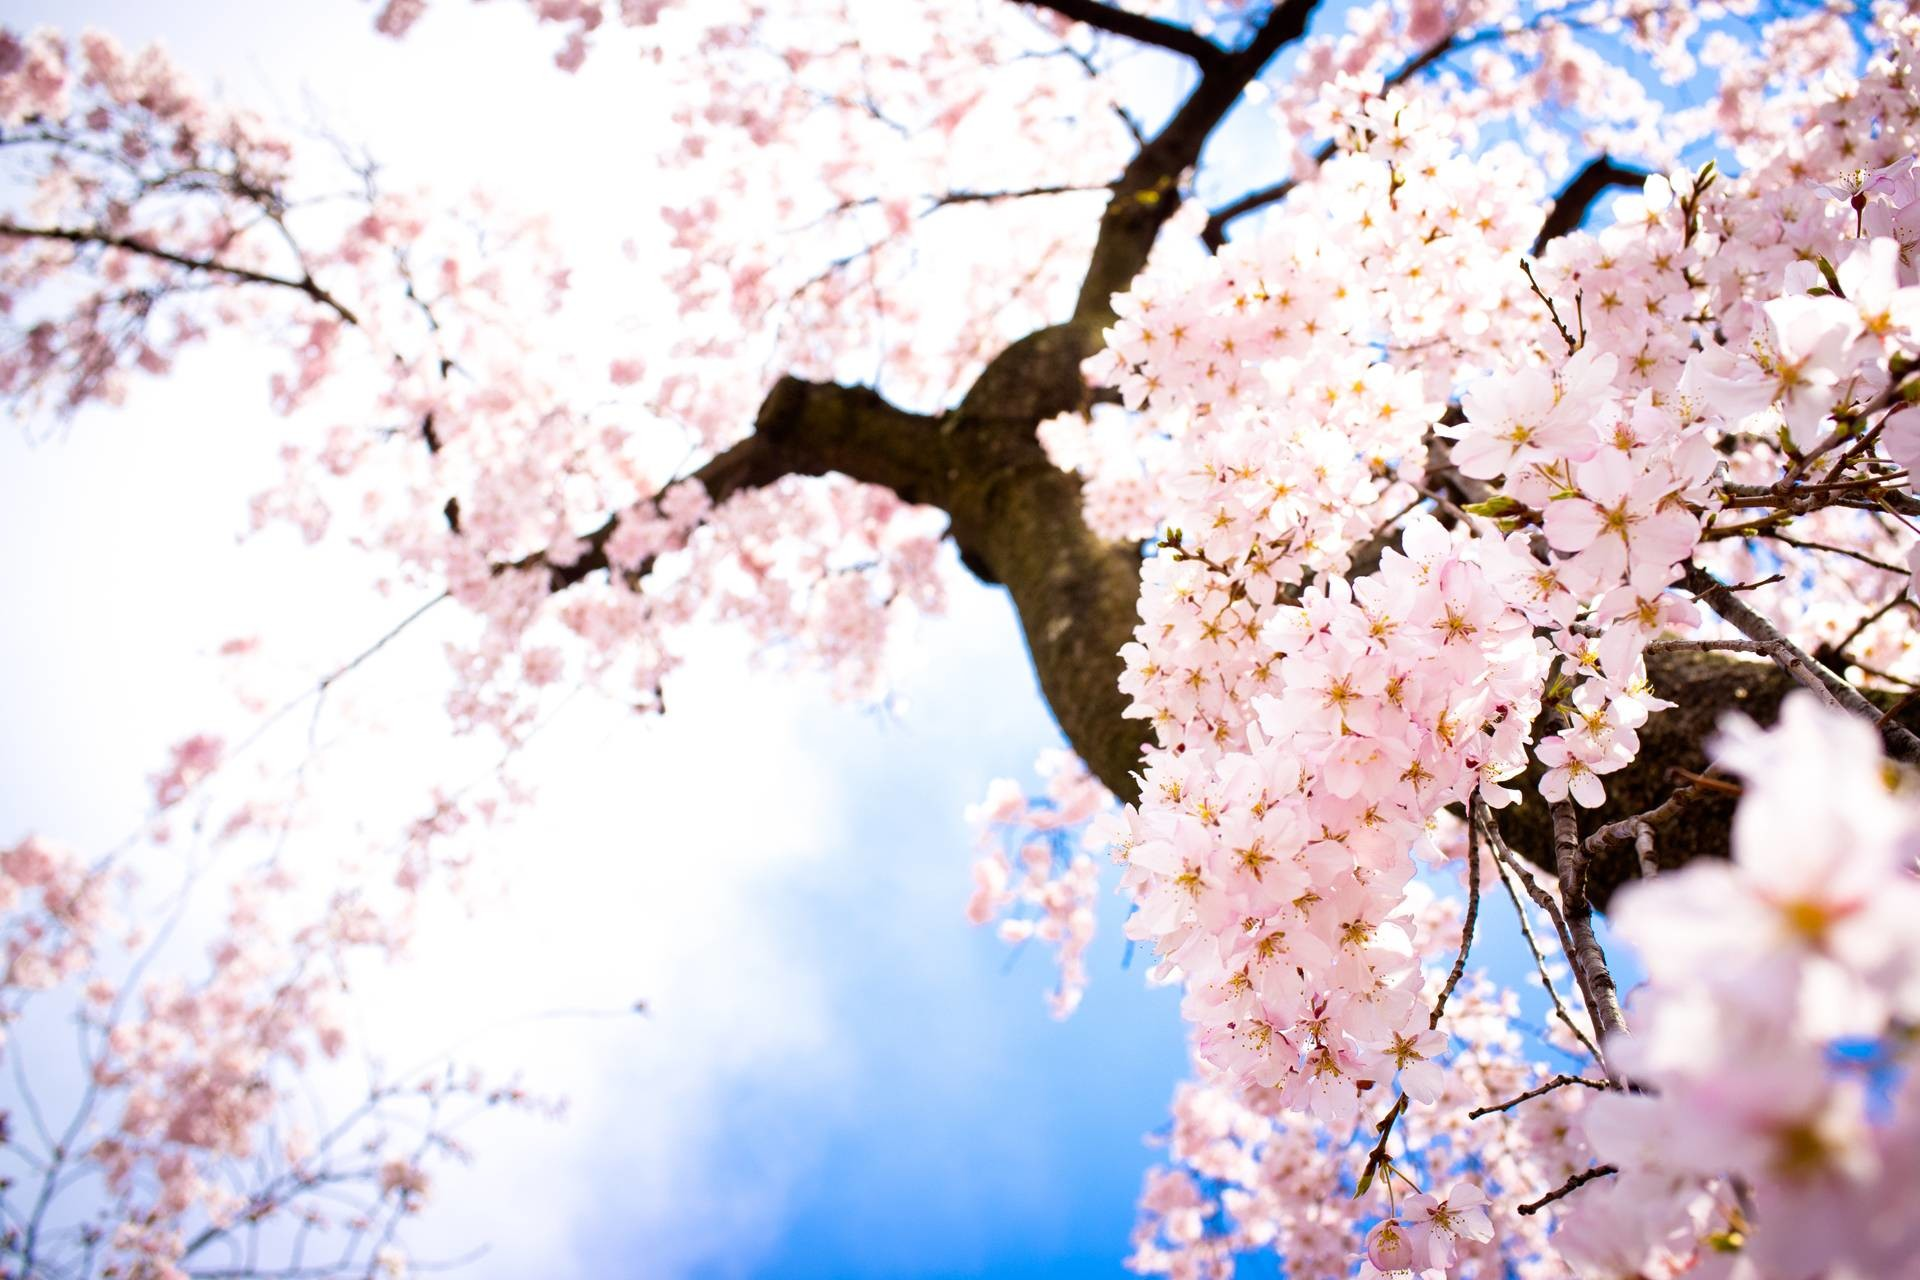 iphone 5 wallpaper cherry blossom – Favourite Pictures